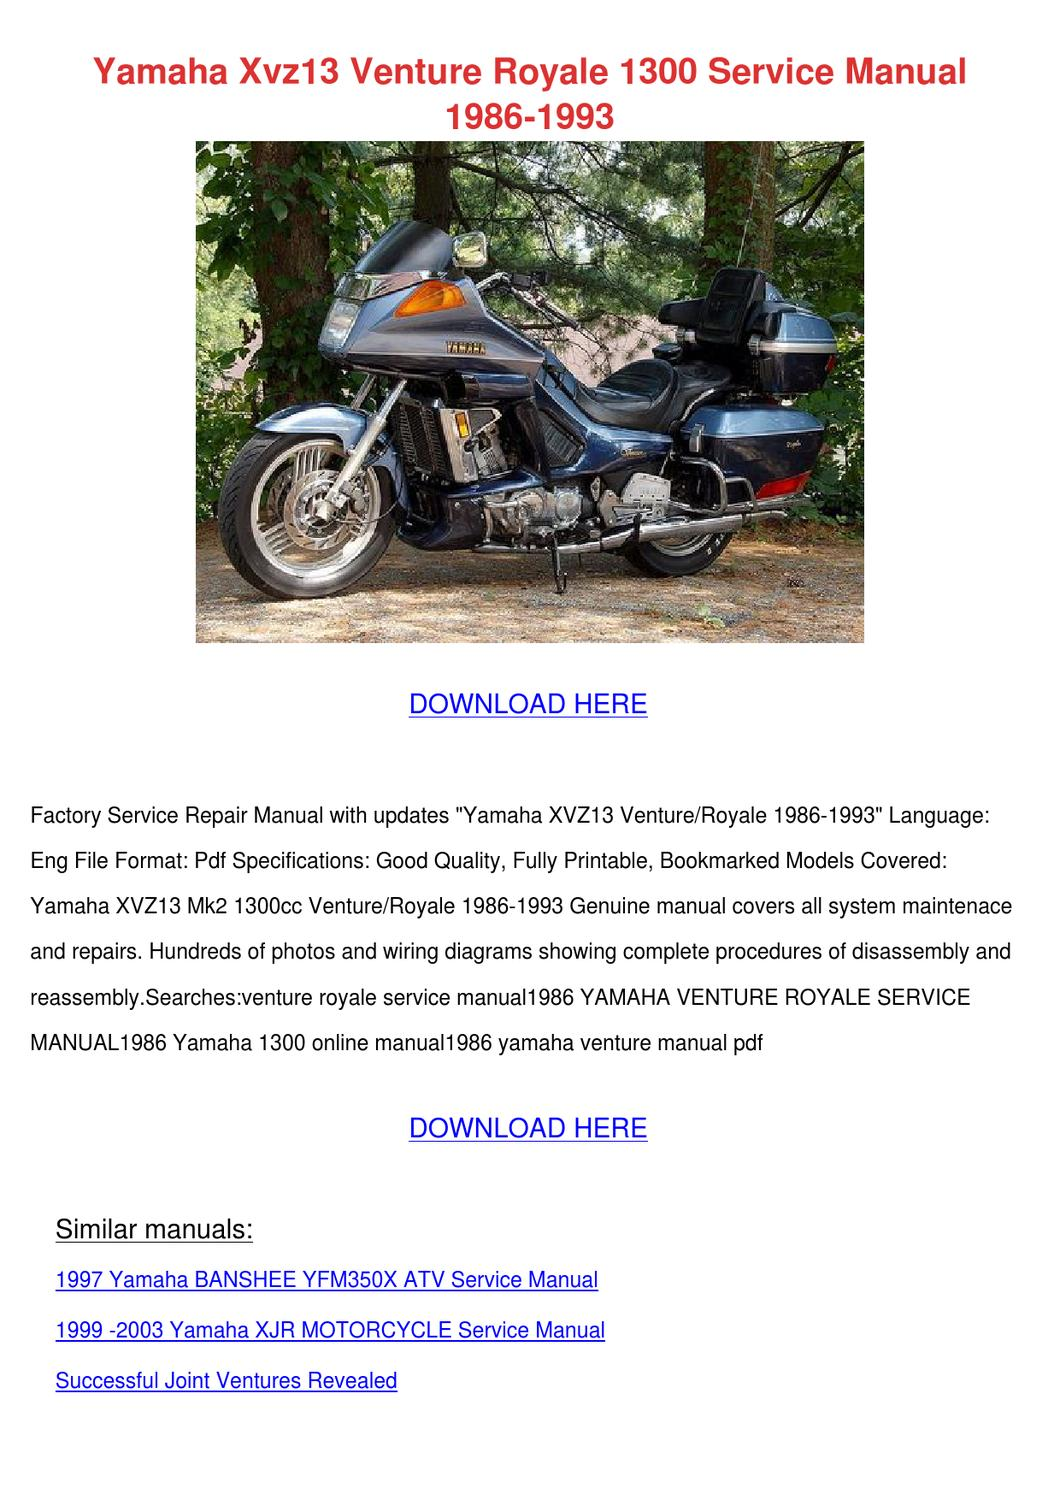 download now yamaha yl1 yl 1 service repair workshop manual instant